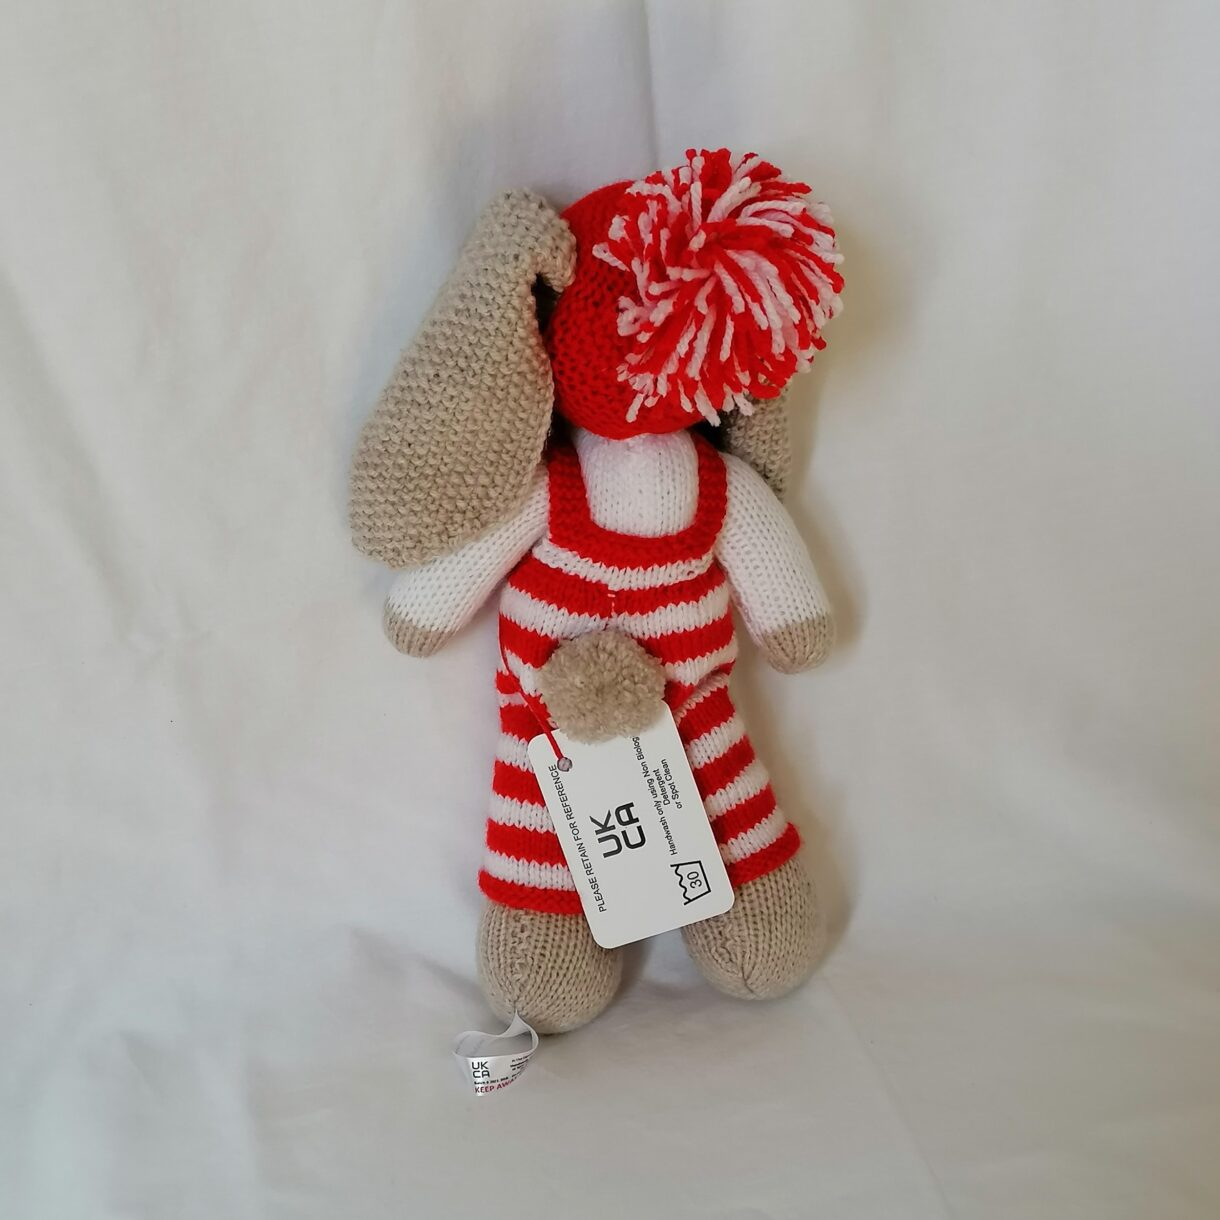 Hand-knitted-soft-toy-Christmas-bunny-red-white-hat-pompom-back